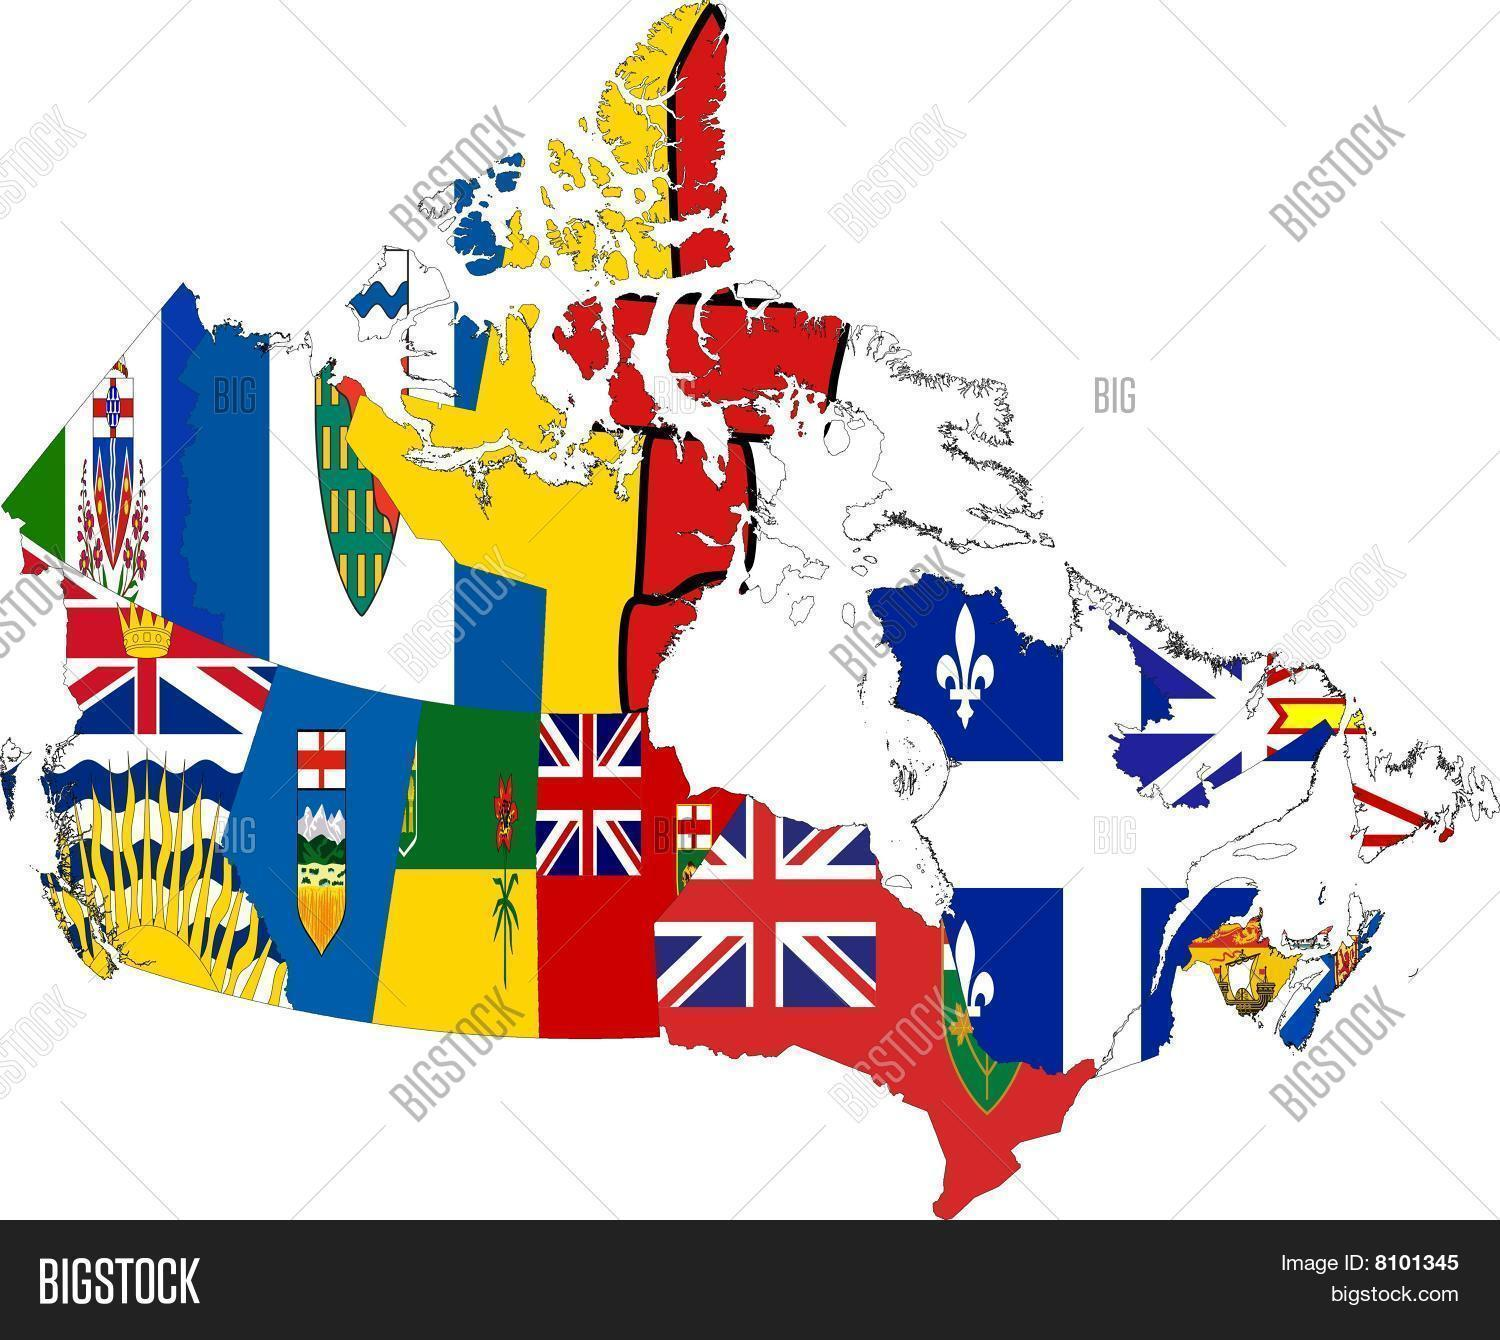 Canada Map Provinces Image Photo Free Trial Bigstock